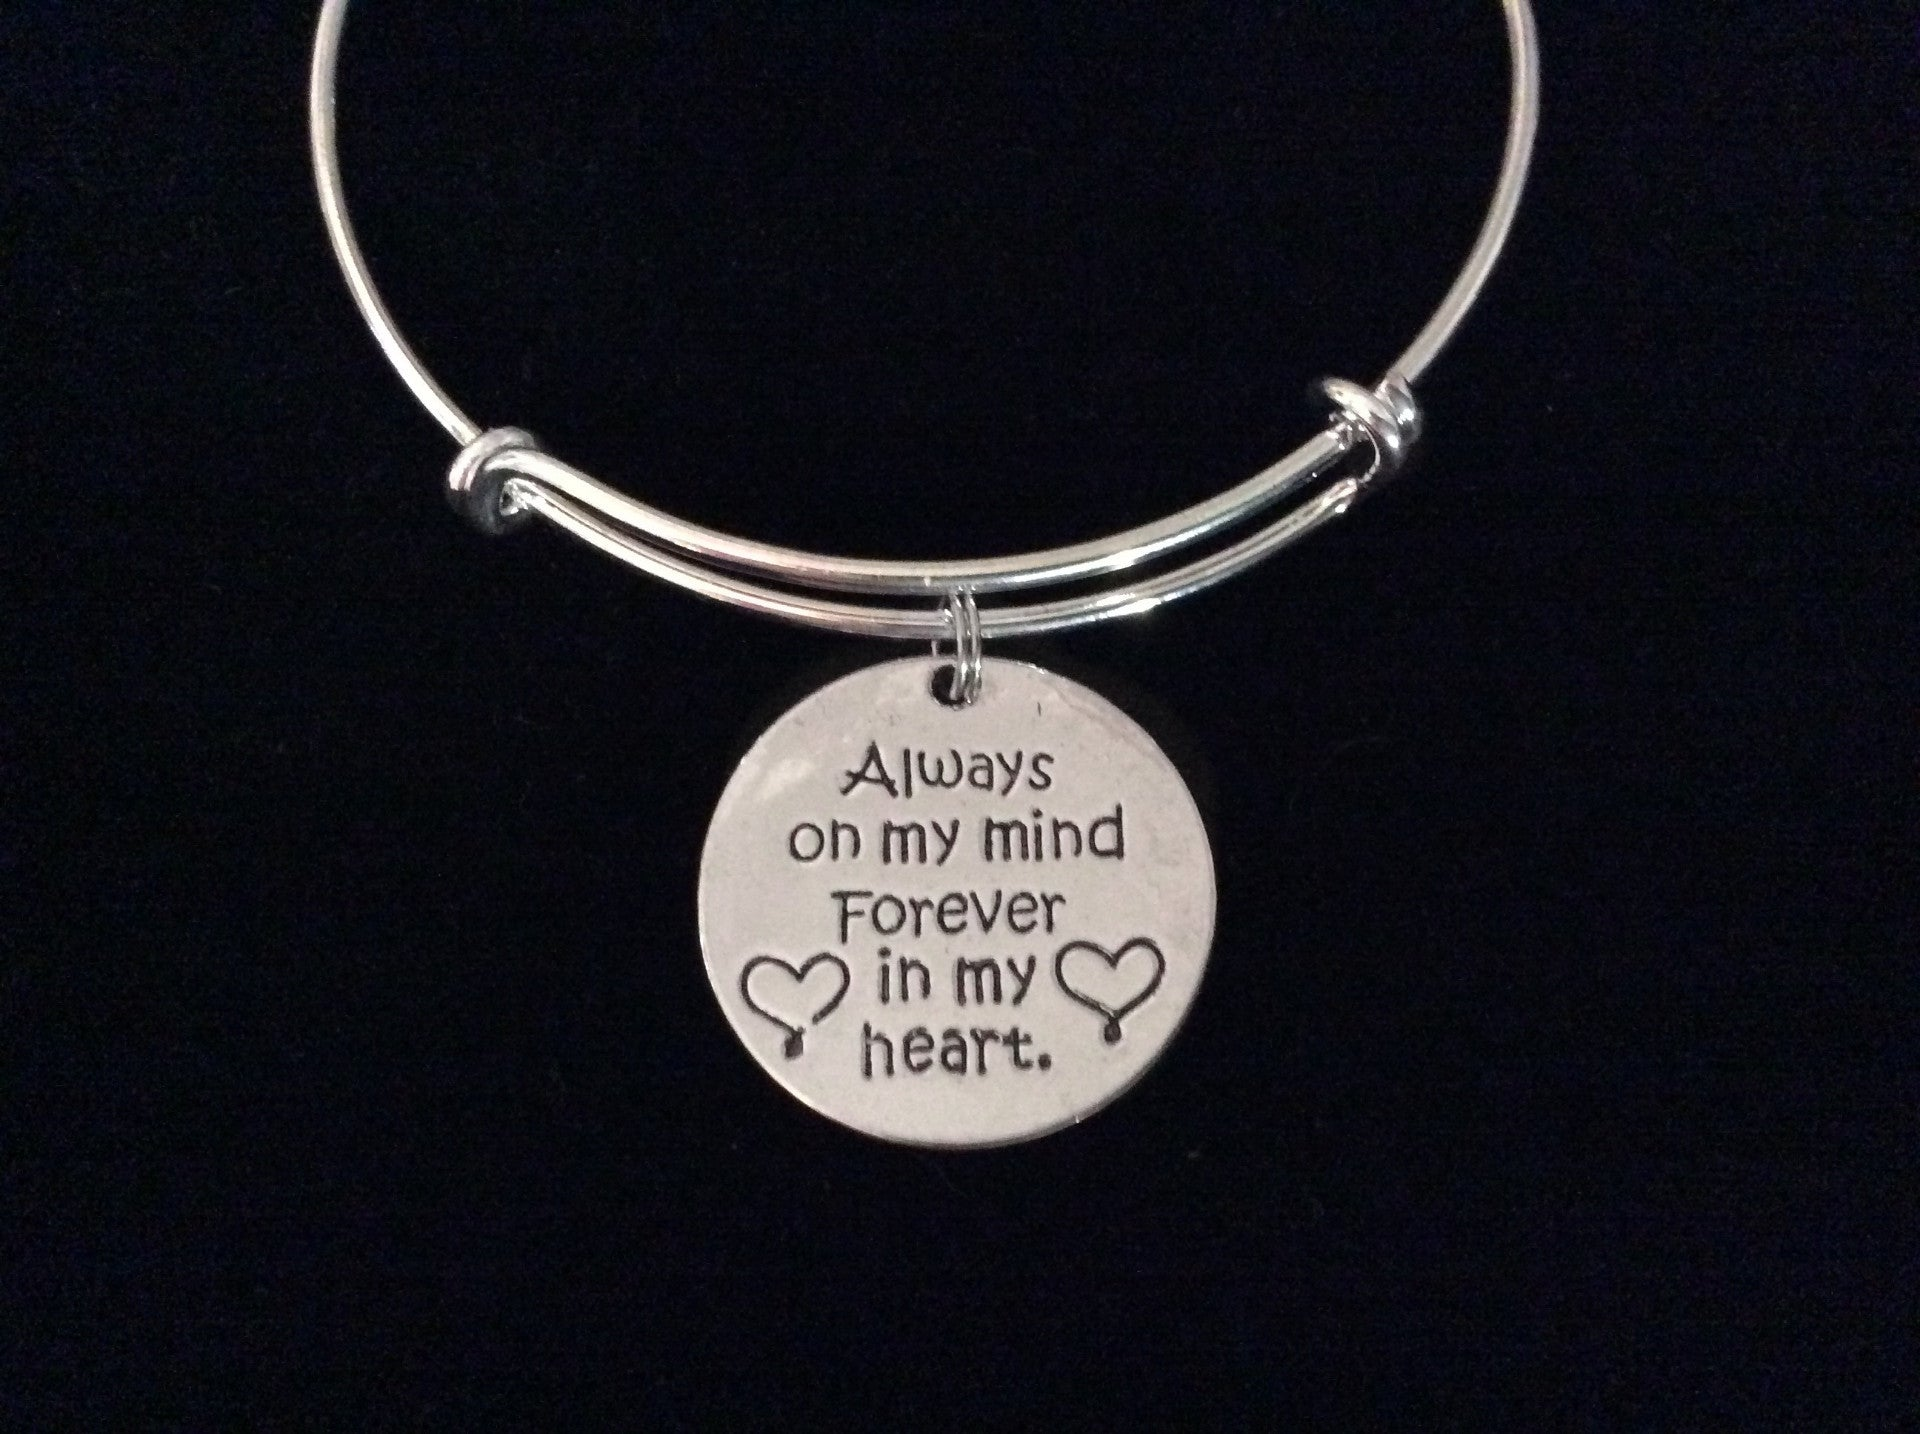 6b21e6f9b541e Always on My Mind Forever in My Heart Expandable Charm Bracelet Adjustable  Wire Bangle Silver Memorial Gift